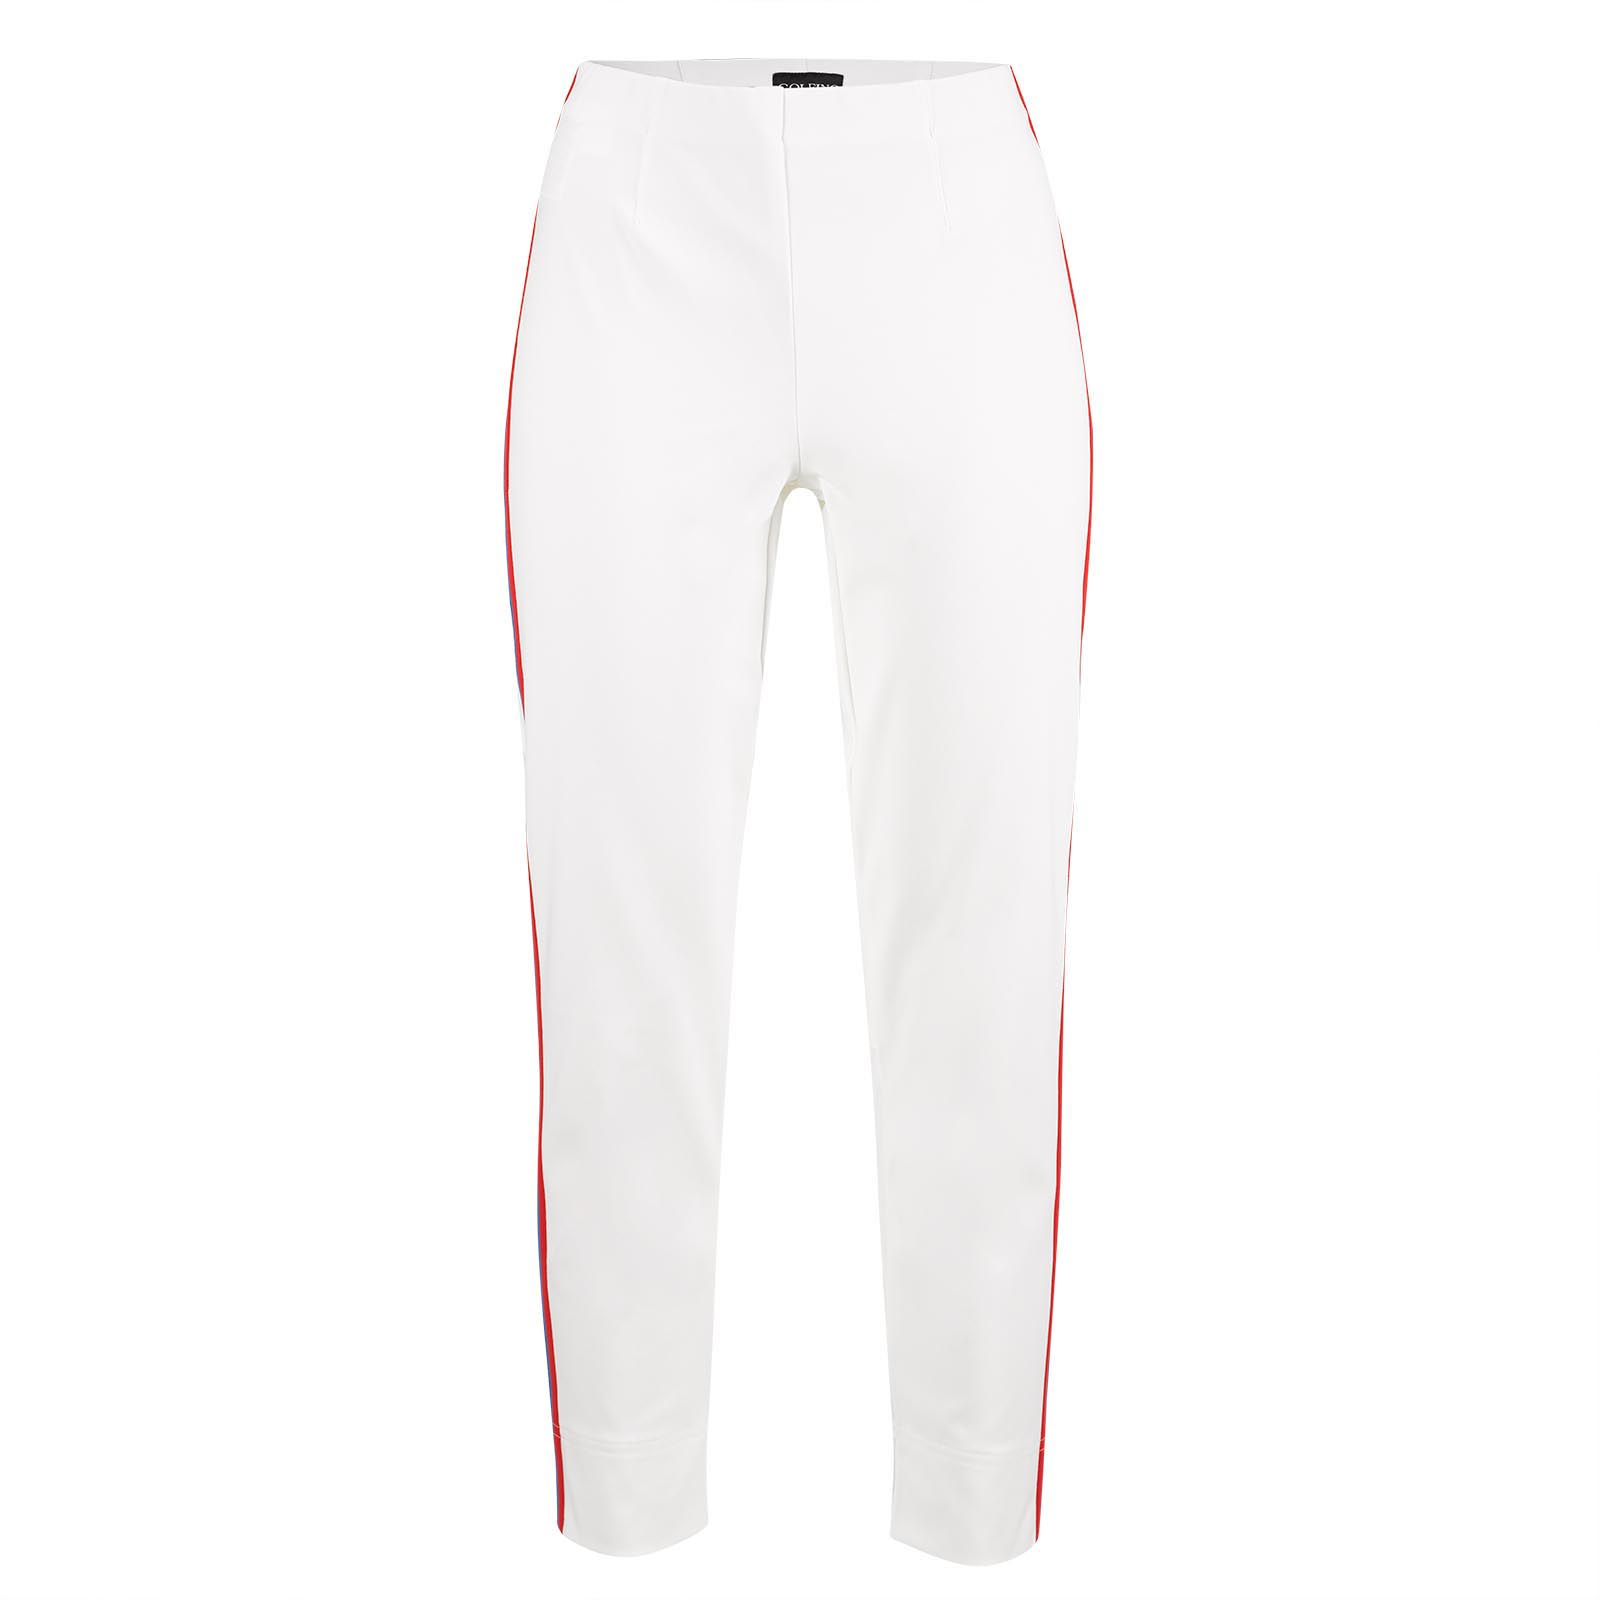 Ladies' 7/8 golf trousers made of lightweight cotton-blend for a sleek fit